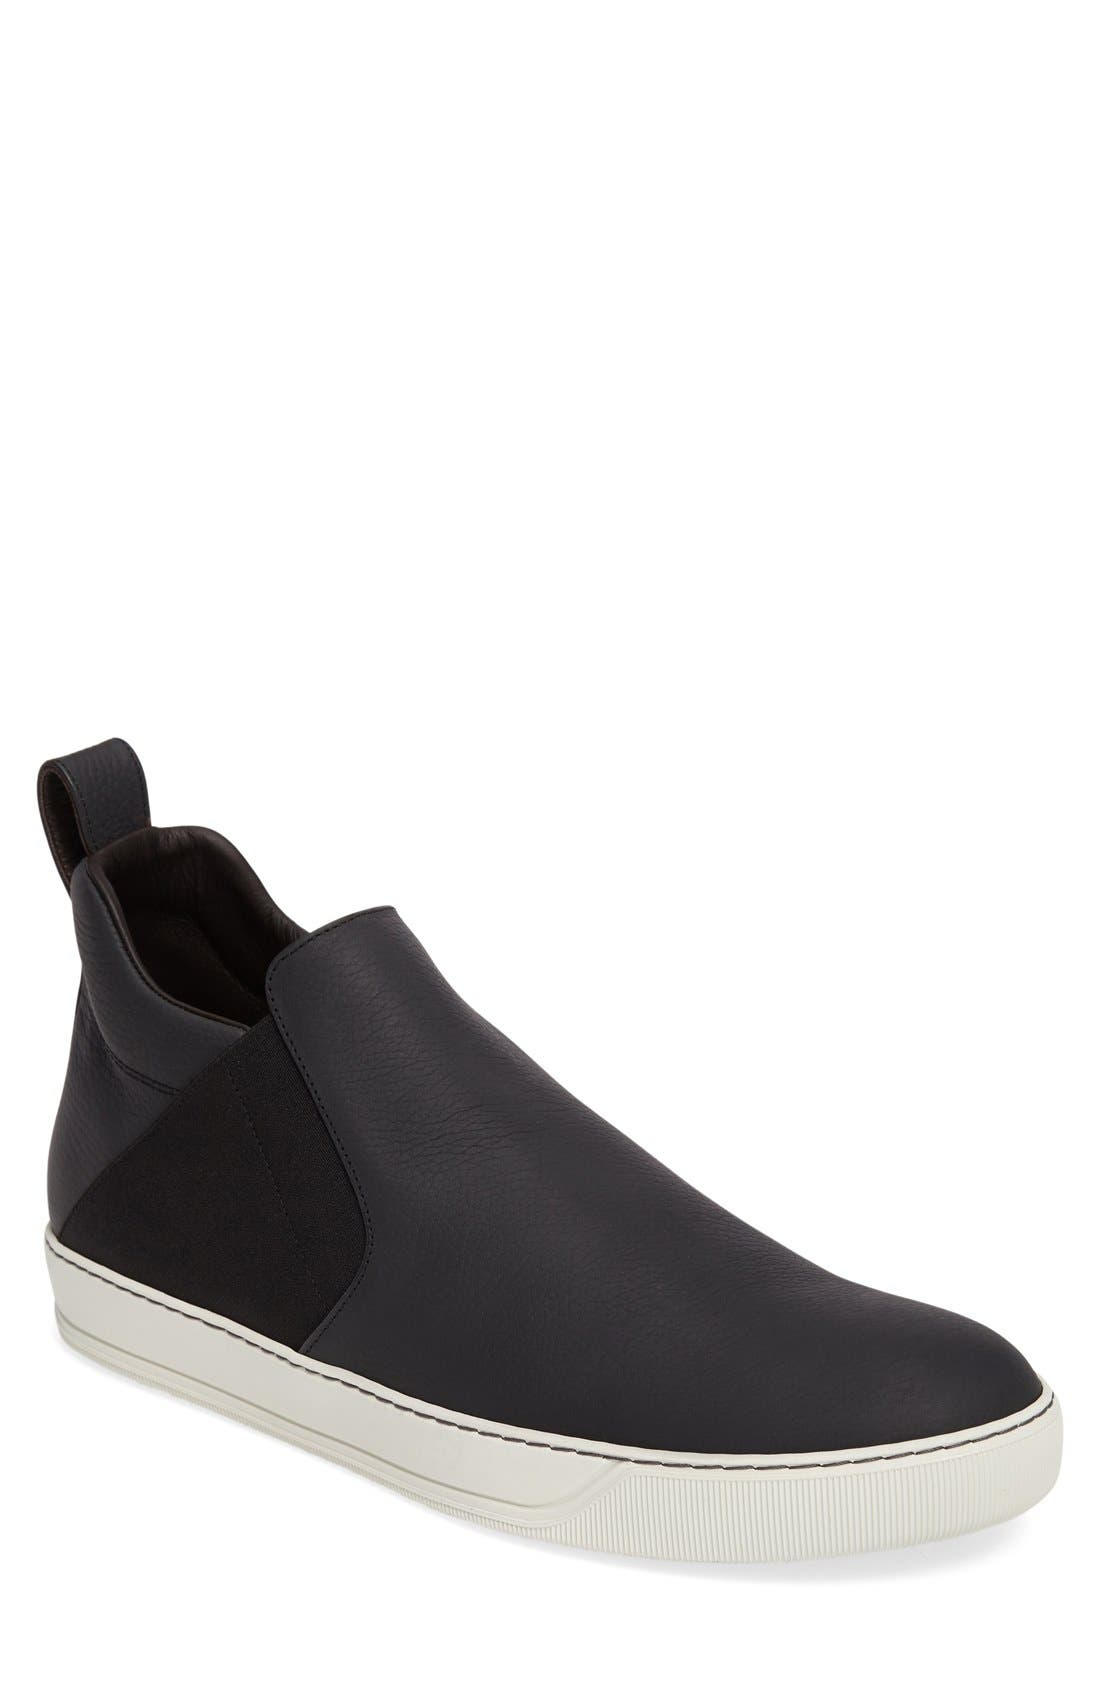 Main Image - Lanvin Mid Slip-On Sneaker (Men)